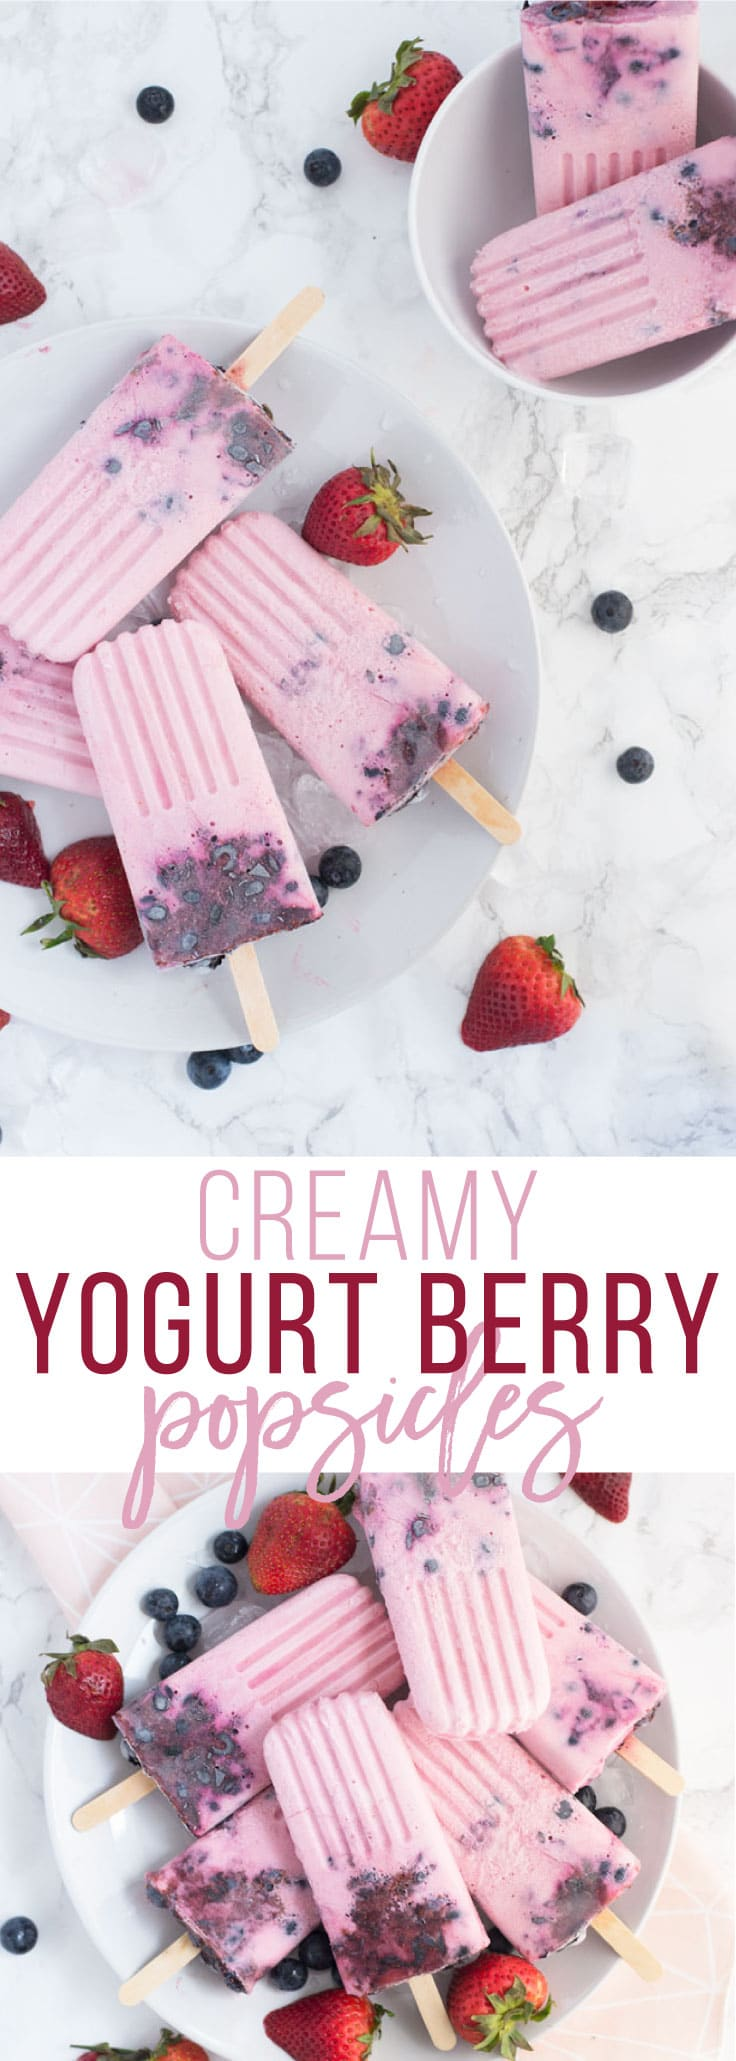 Creamy Yogurt Berry Popsicles - These delicious popsicles are made with Greek yogurt, coconut milk, fresh berries, and a hint of honey. They are a healthy dessert option and a perfect Summer dessert! #healthydessert #summer #berries #popsicles #popsiclerecipes #easy #homemade #creamy | mindfulavocado